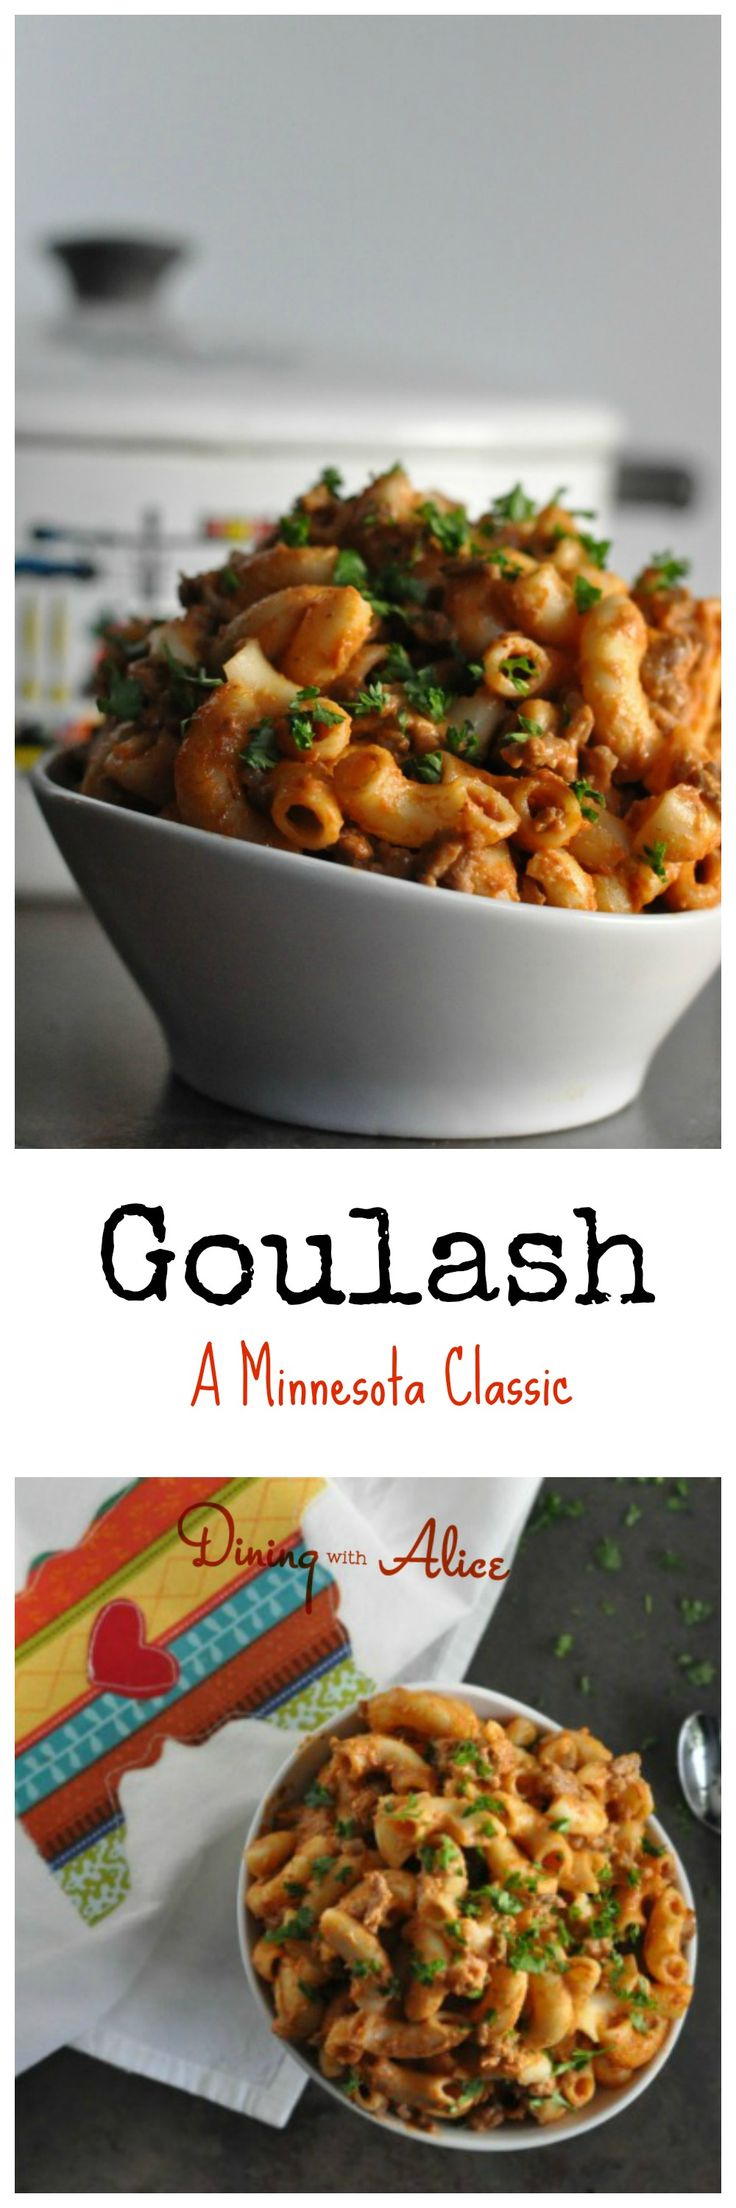 A comfort food classic, Goulash is an easy weeknight dinner option and meal that whole family will love. #goulash #minnesota #comfortfood